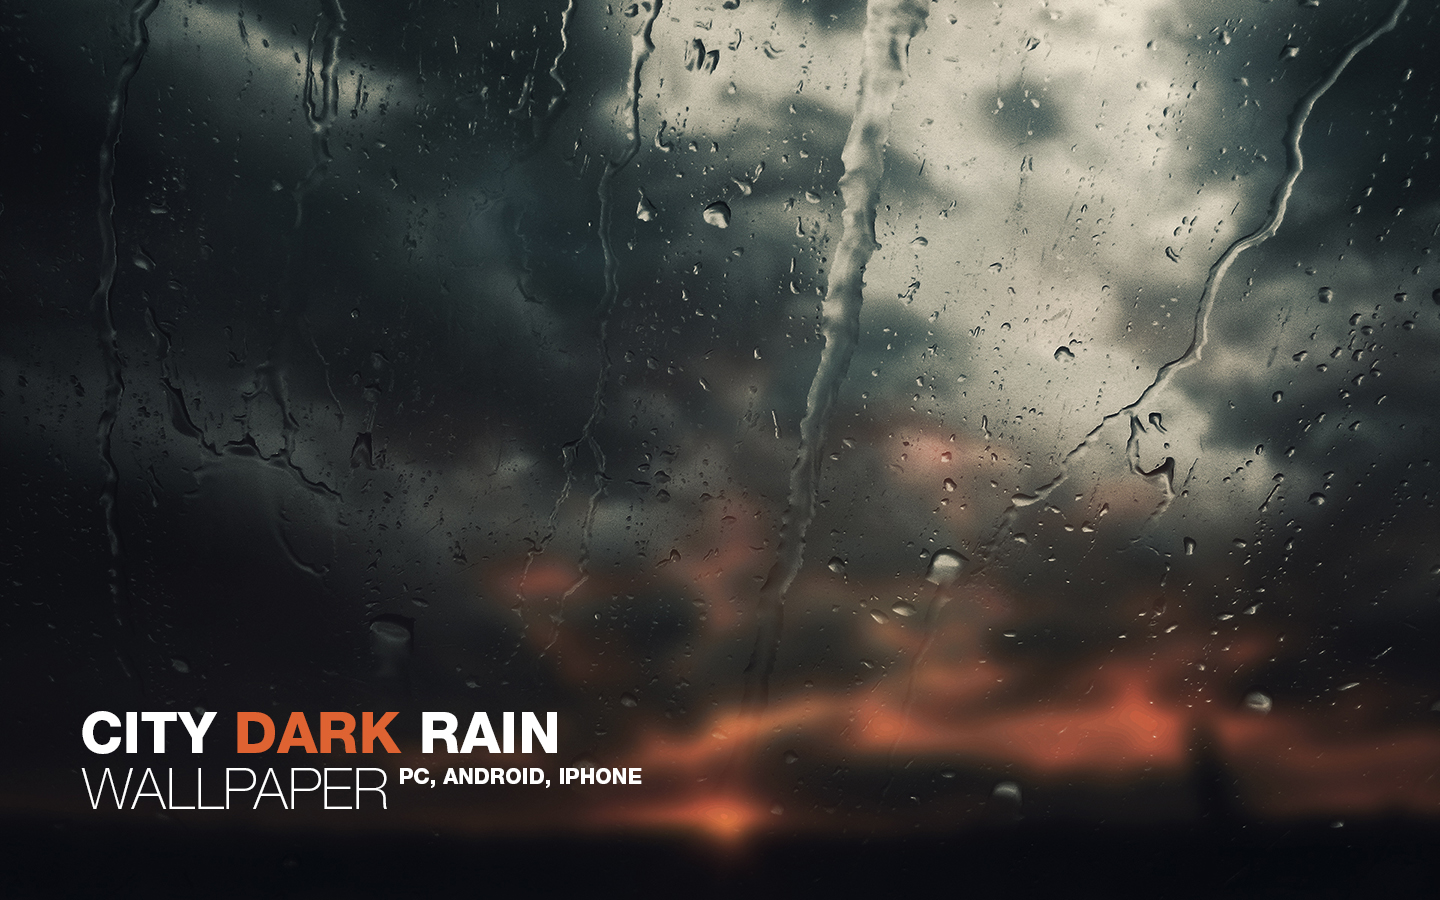 City Dark Rain Wallpaper By Martz90 On Deviantart